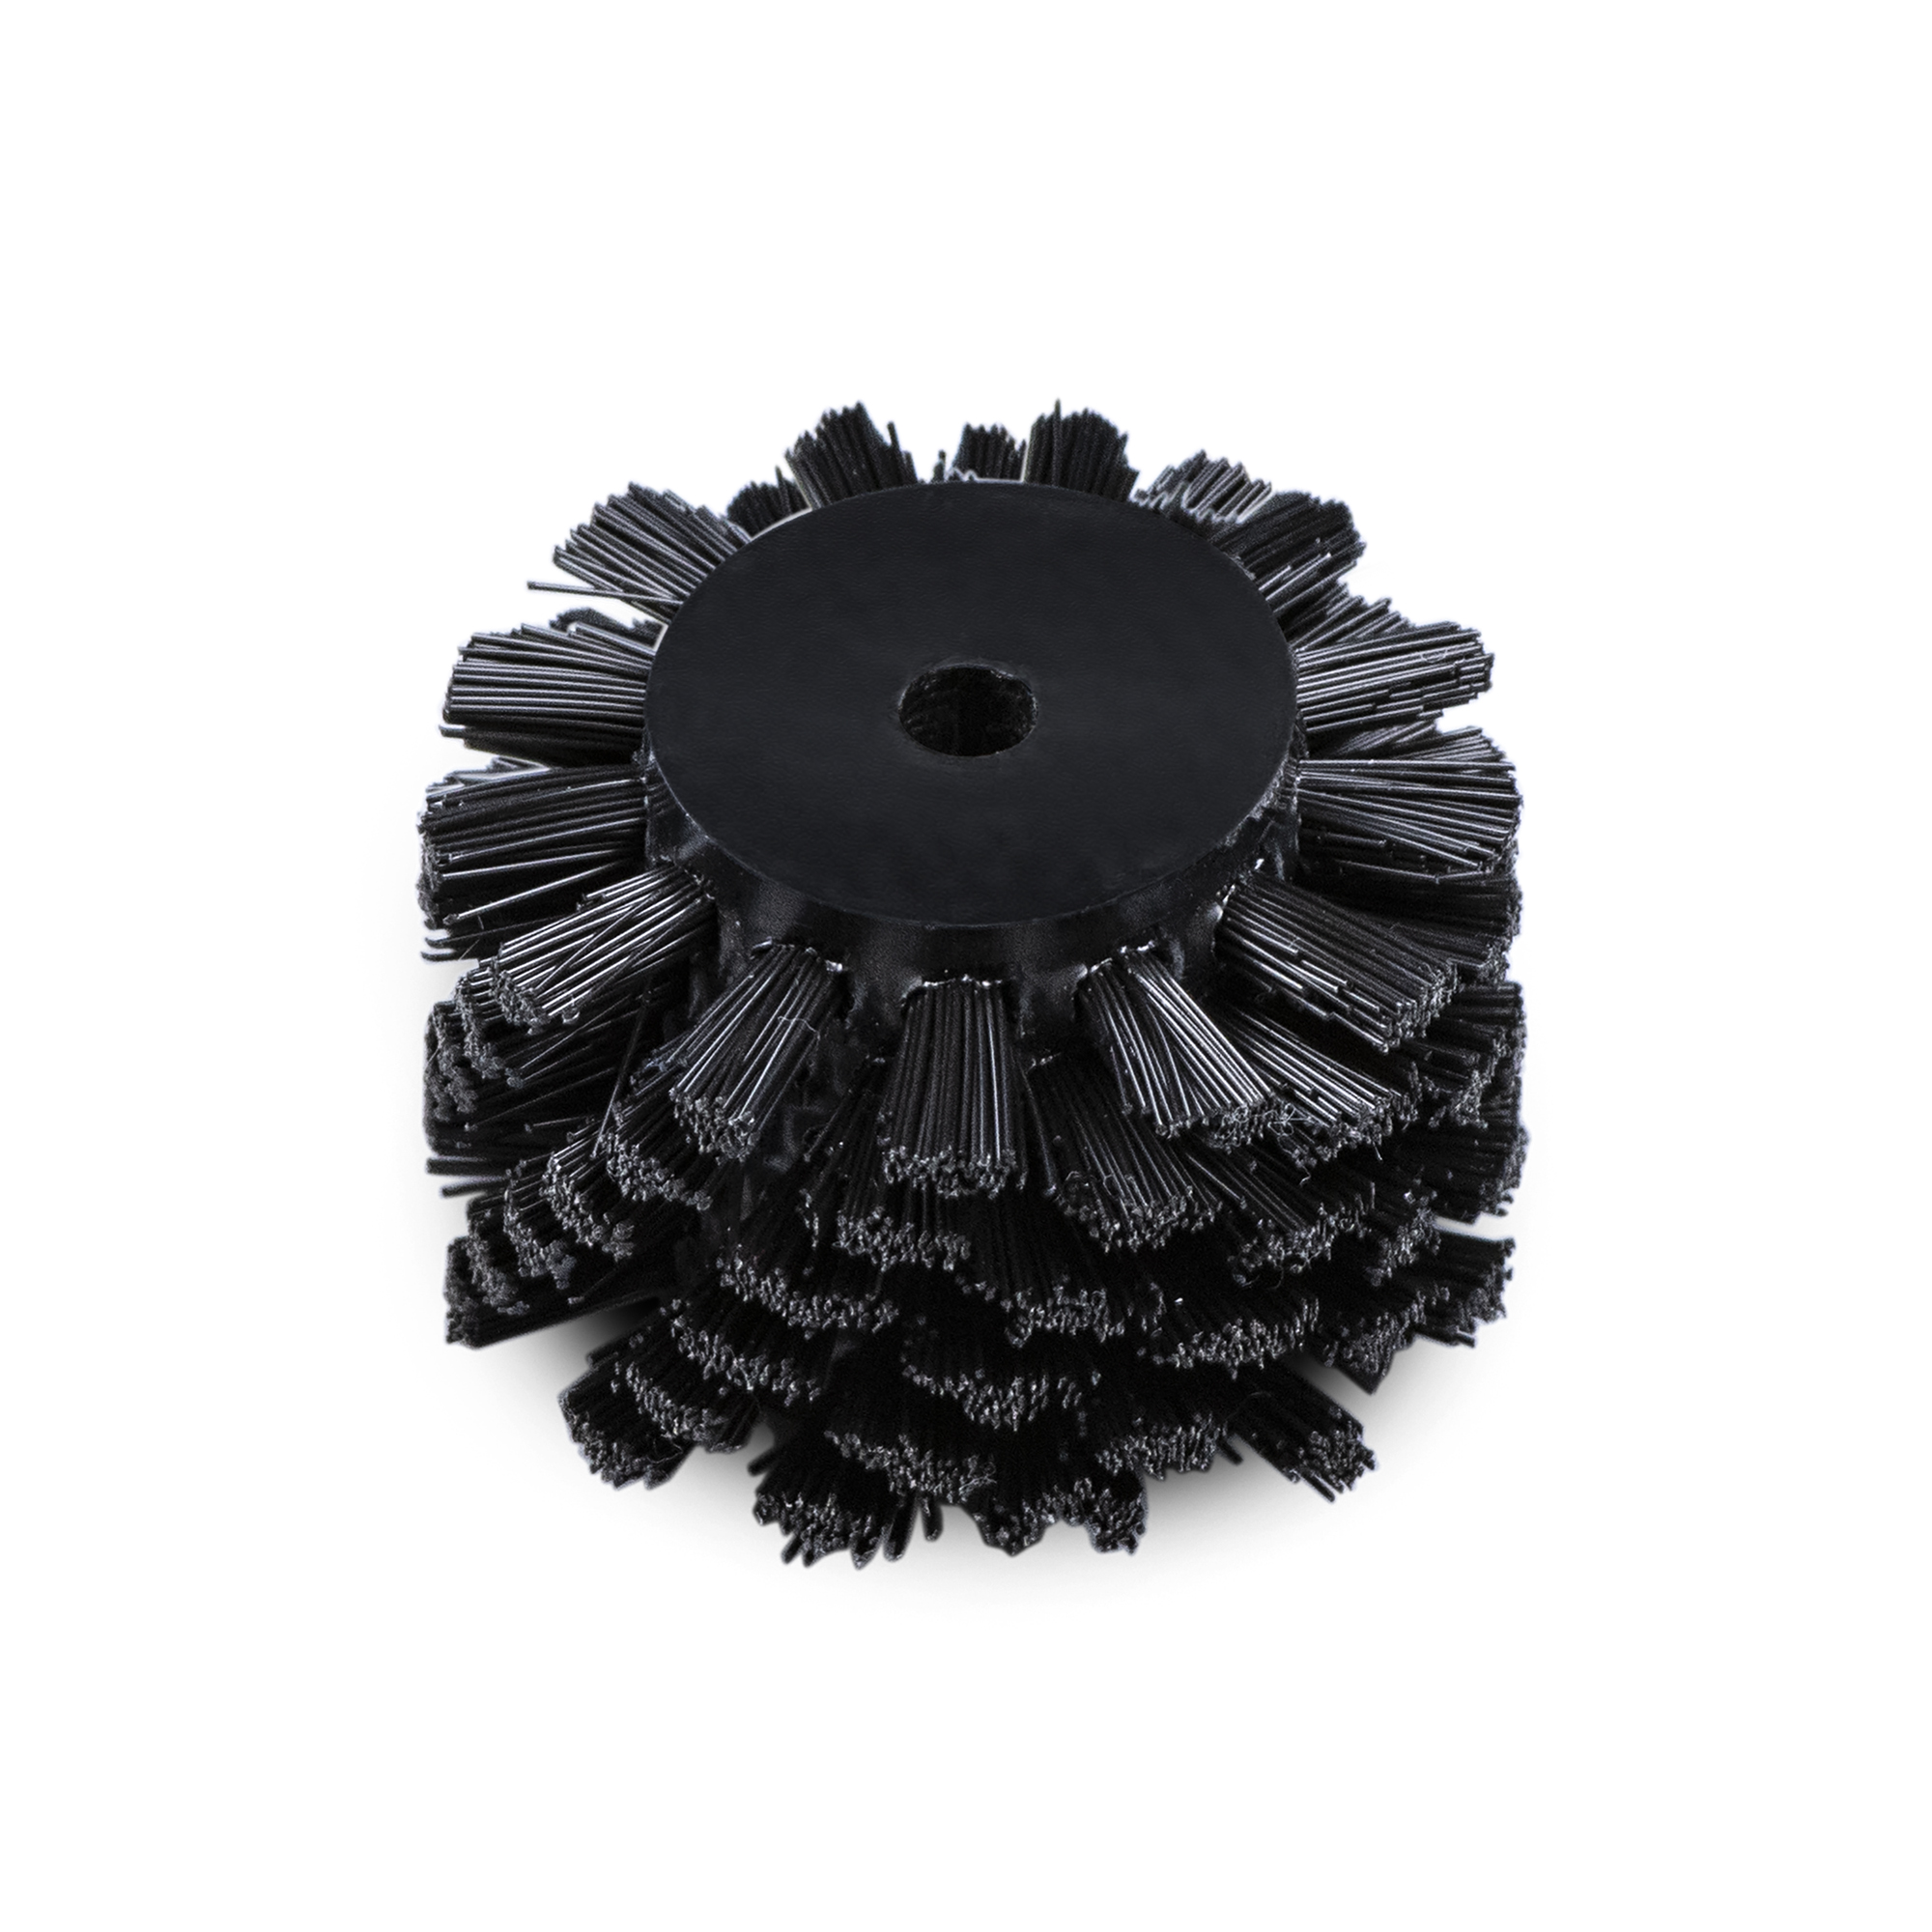 37mm/40mm/12 Ga Less Lethal Cleaning Kit